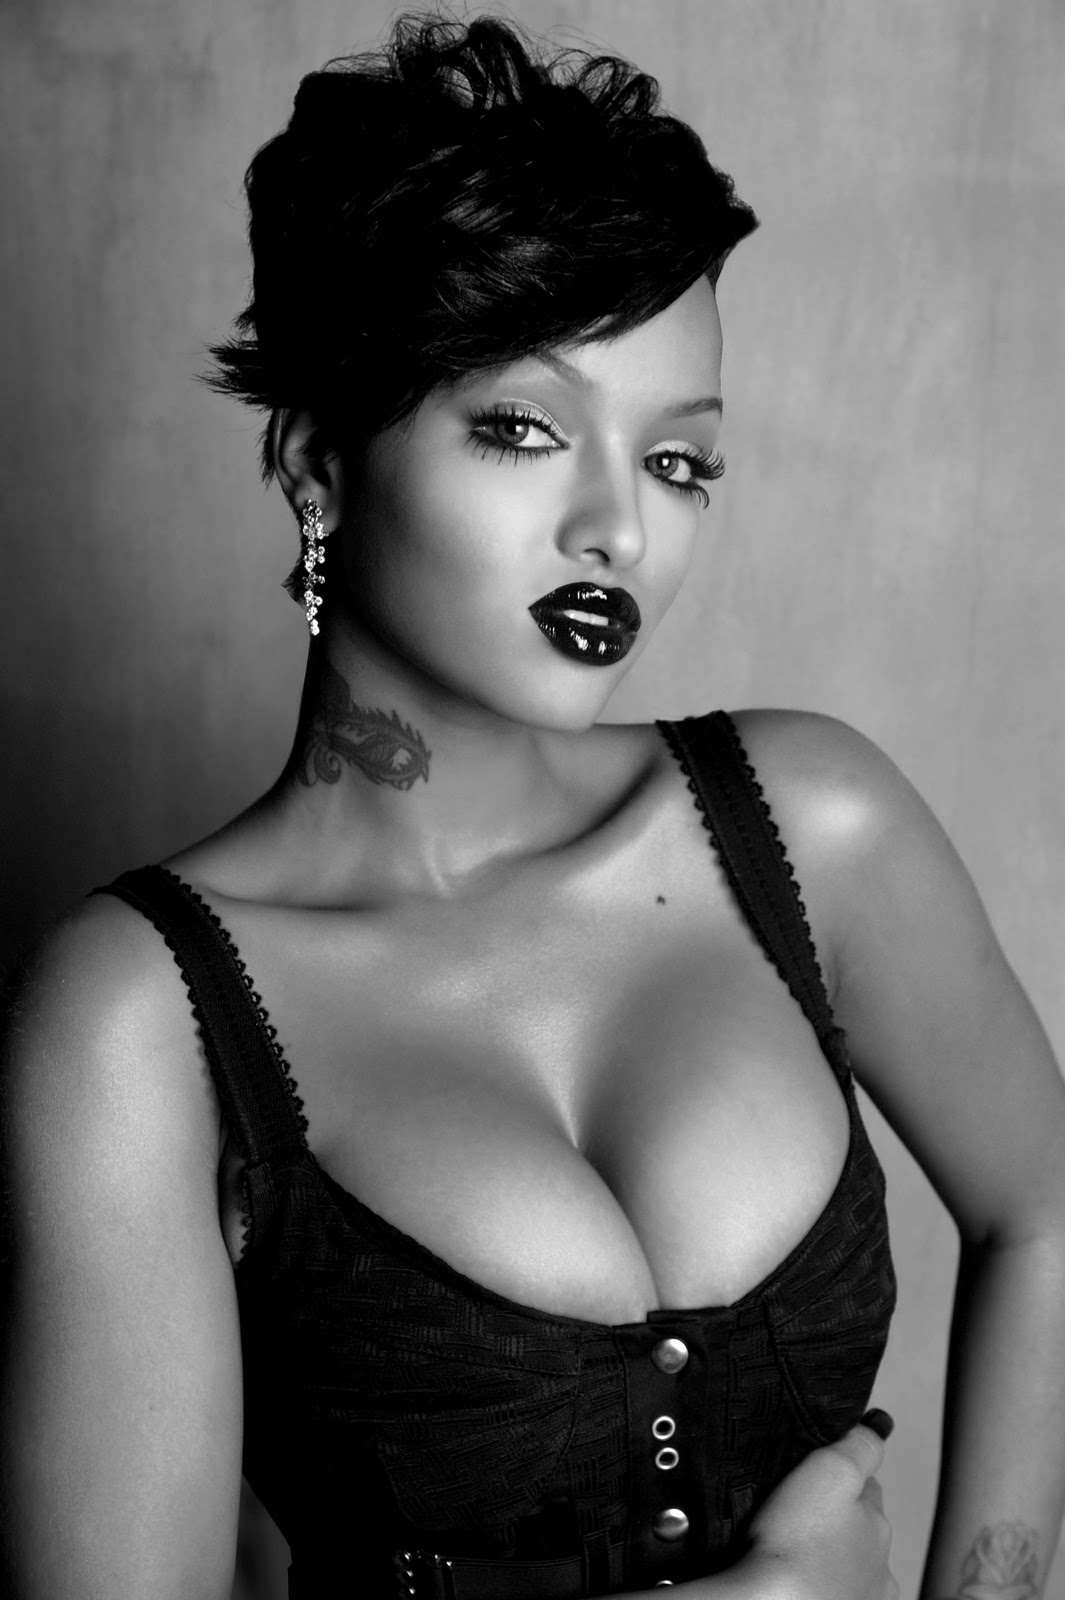 Featured image for Today's Hottest Woman: LoLa Monroe